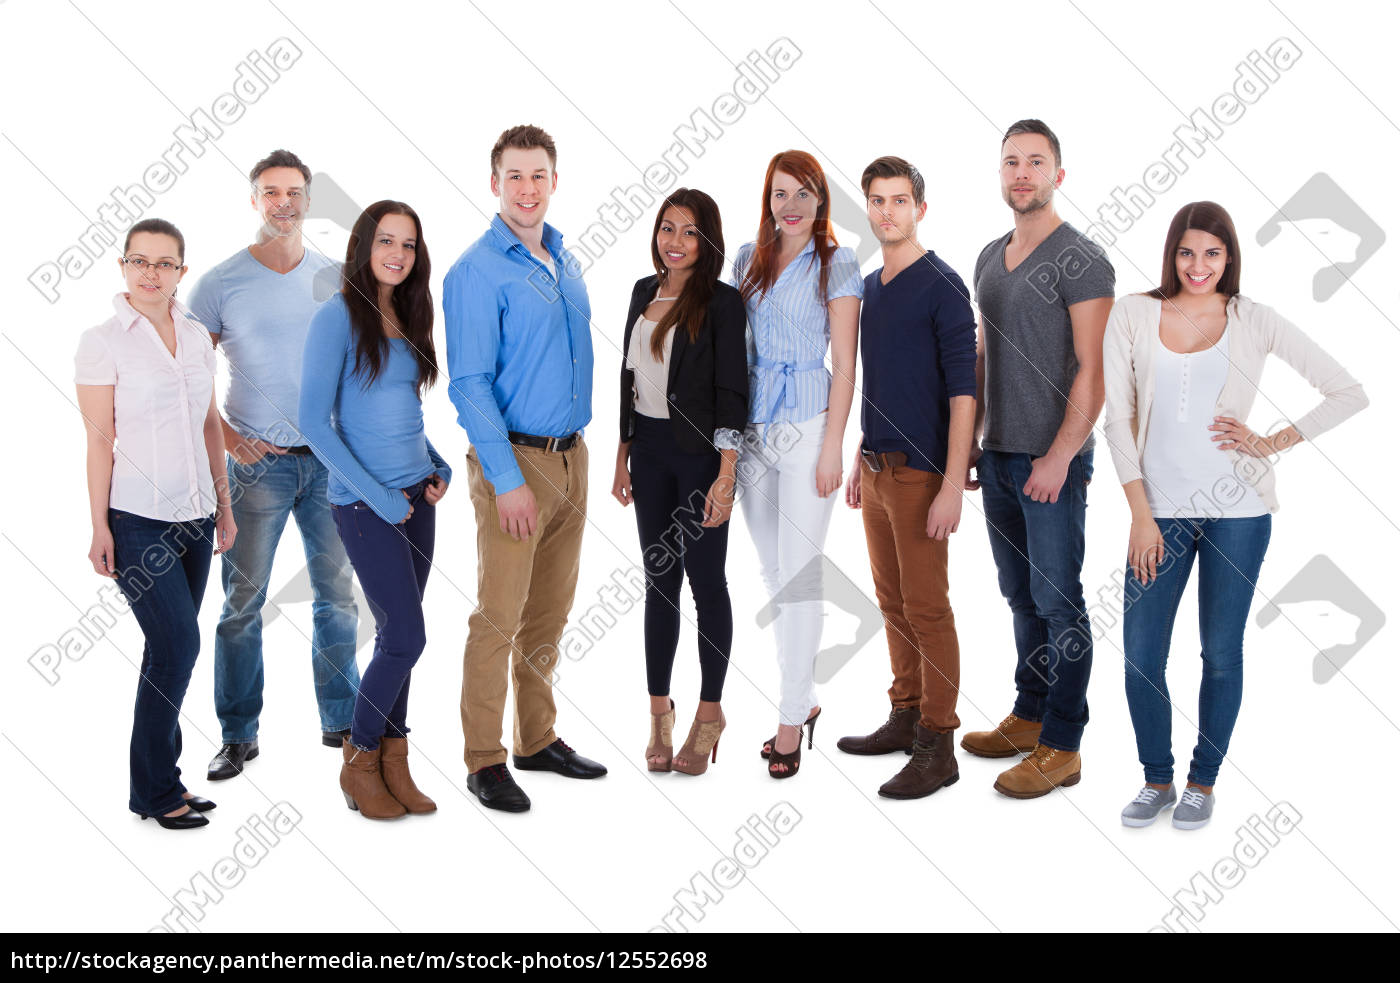 group, of, diverse, people - 12552698